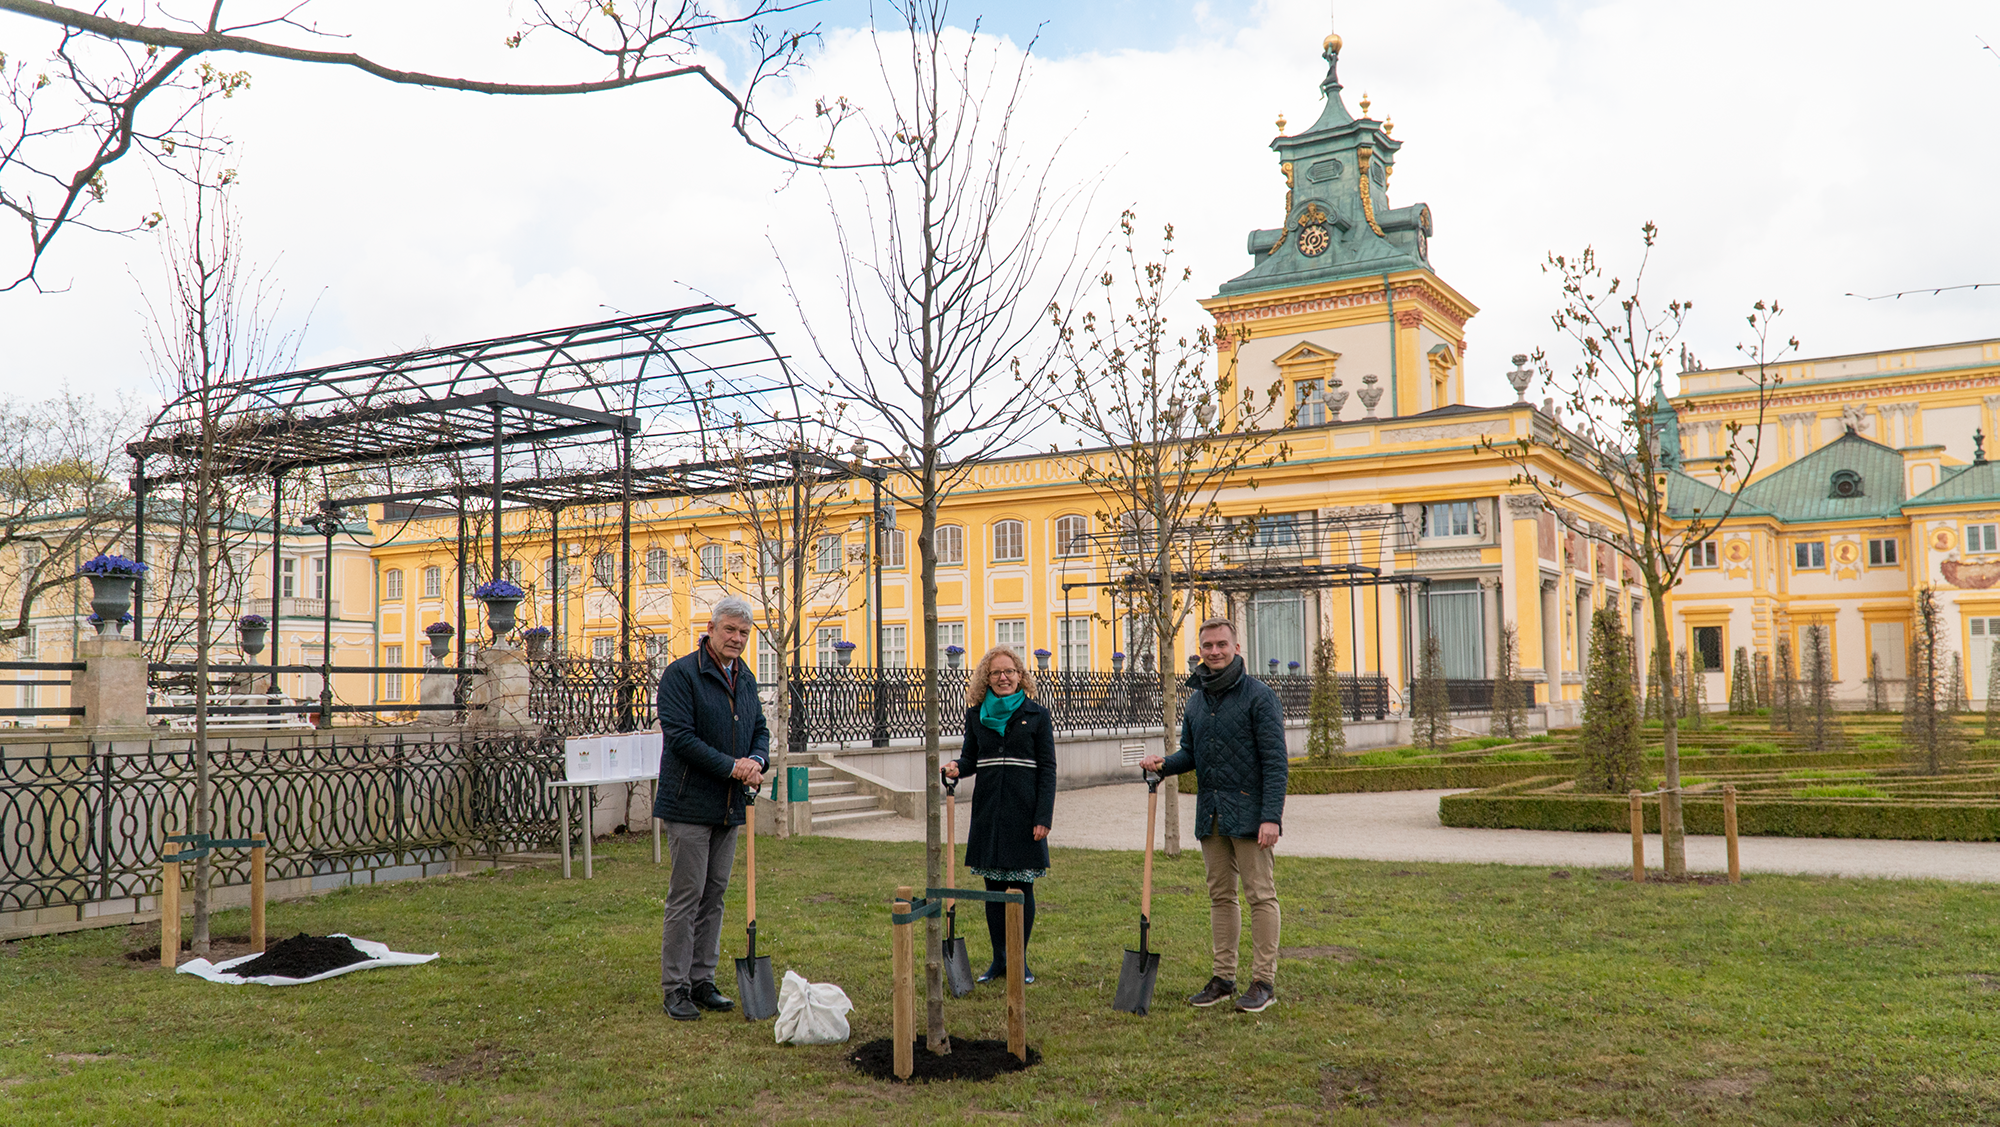 Tree Planting at Wilanów Palace Gardens, 26 April